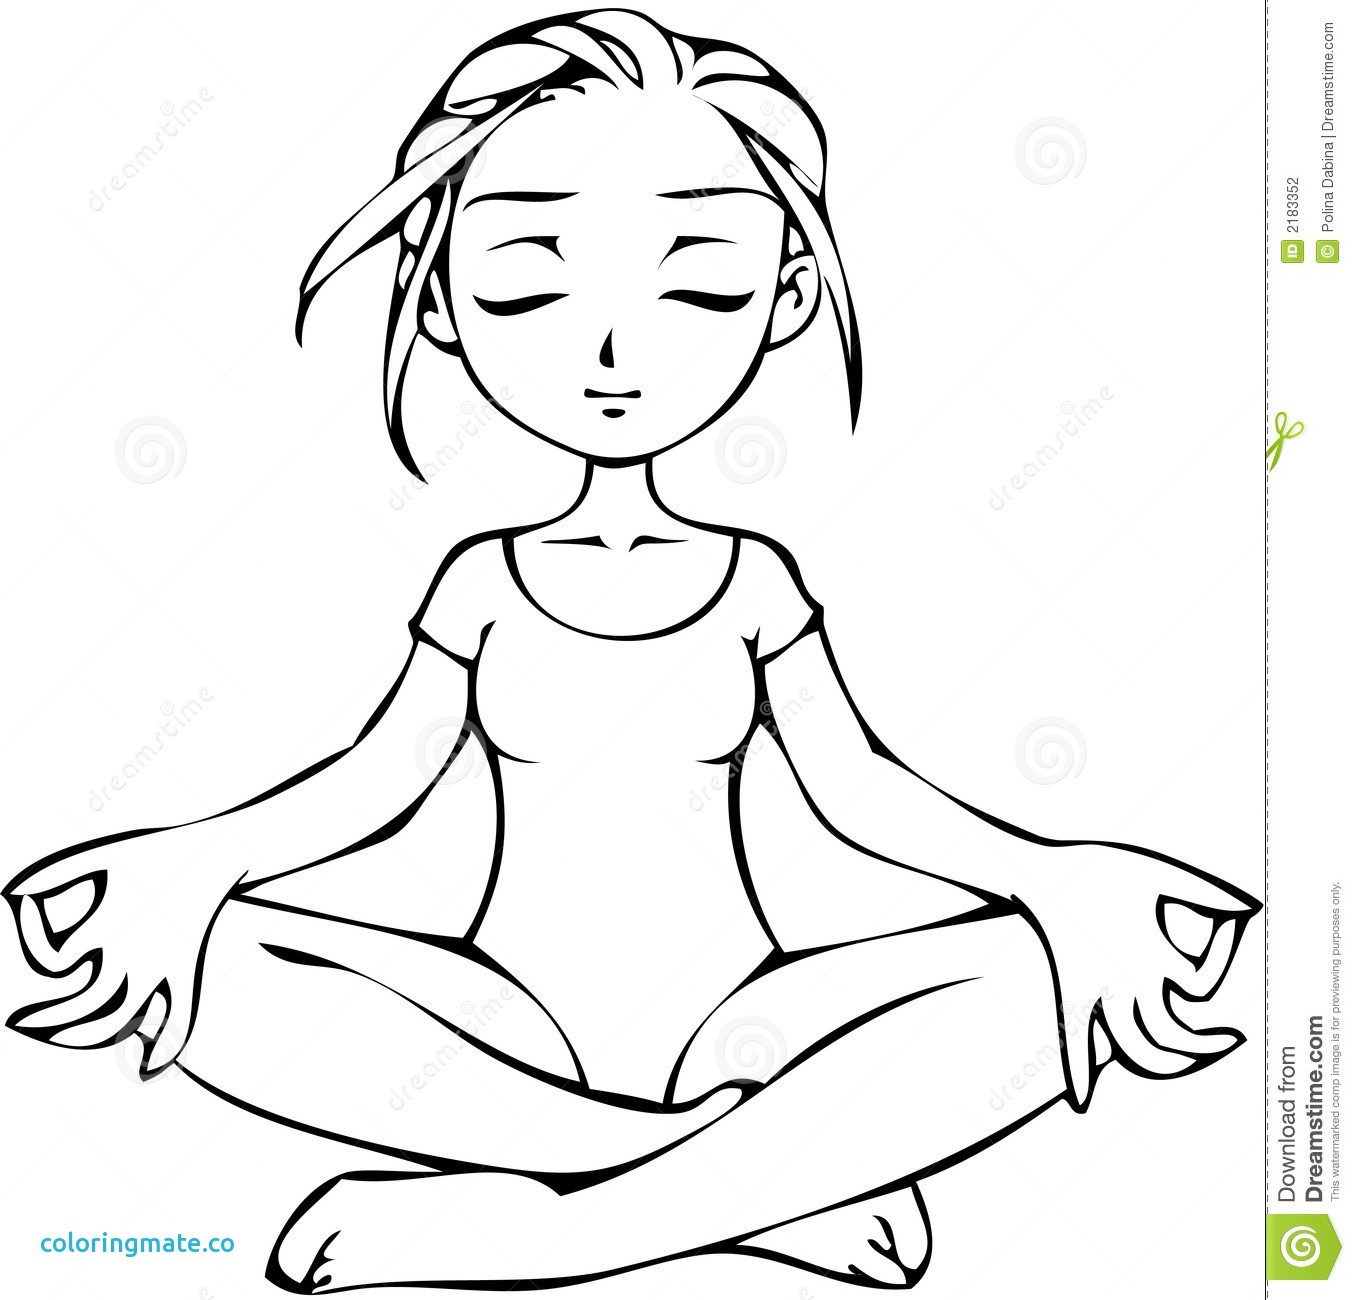 Yoga Coloring Pages At Getcolorings